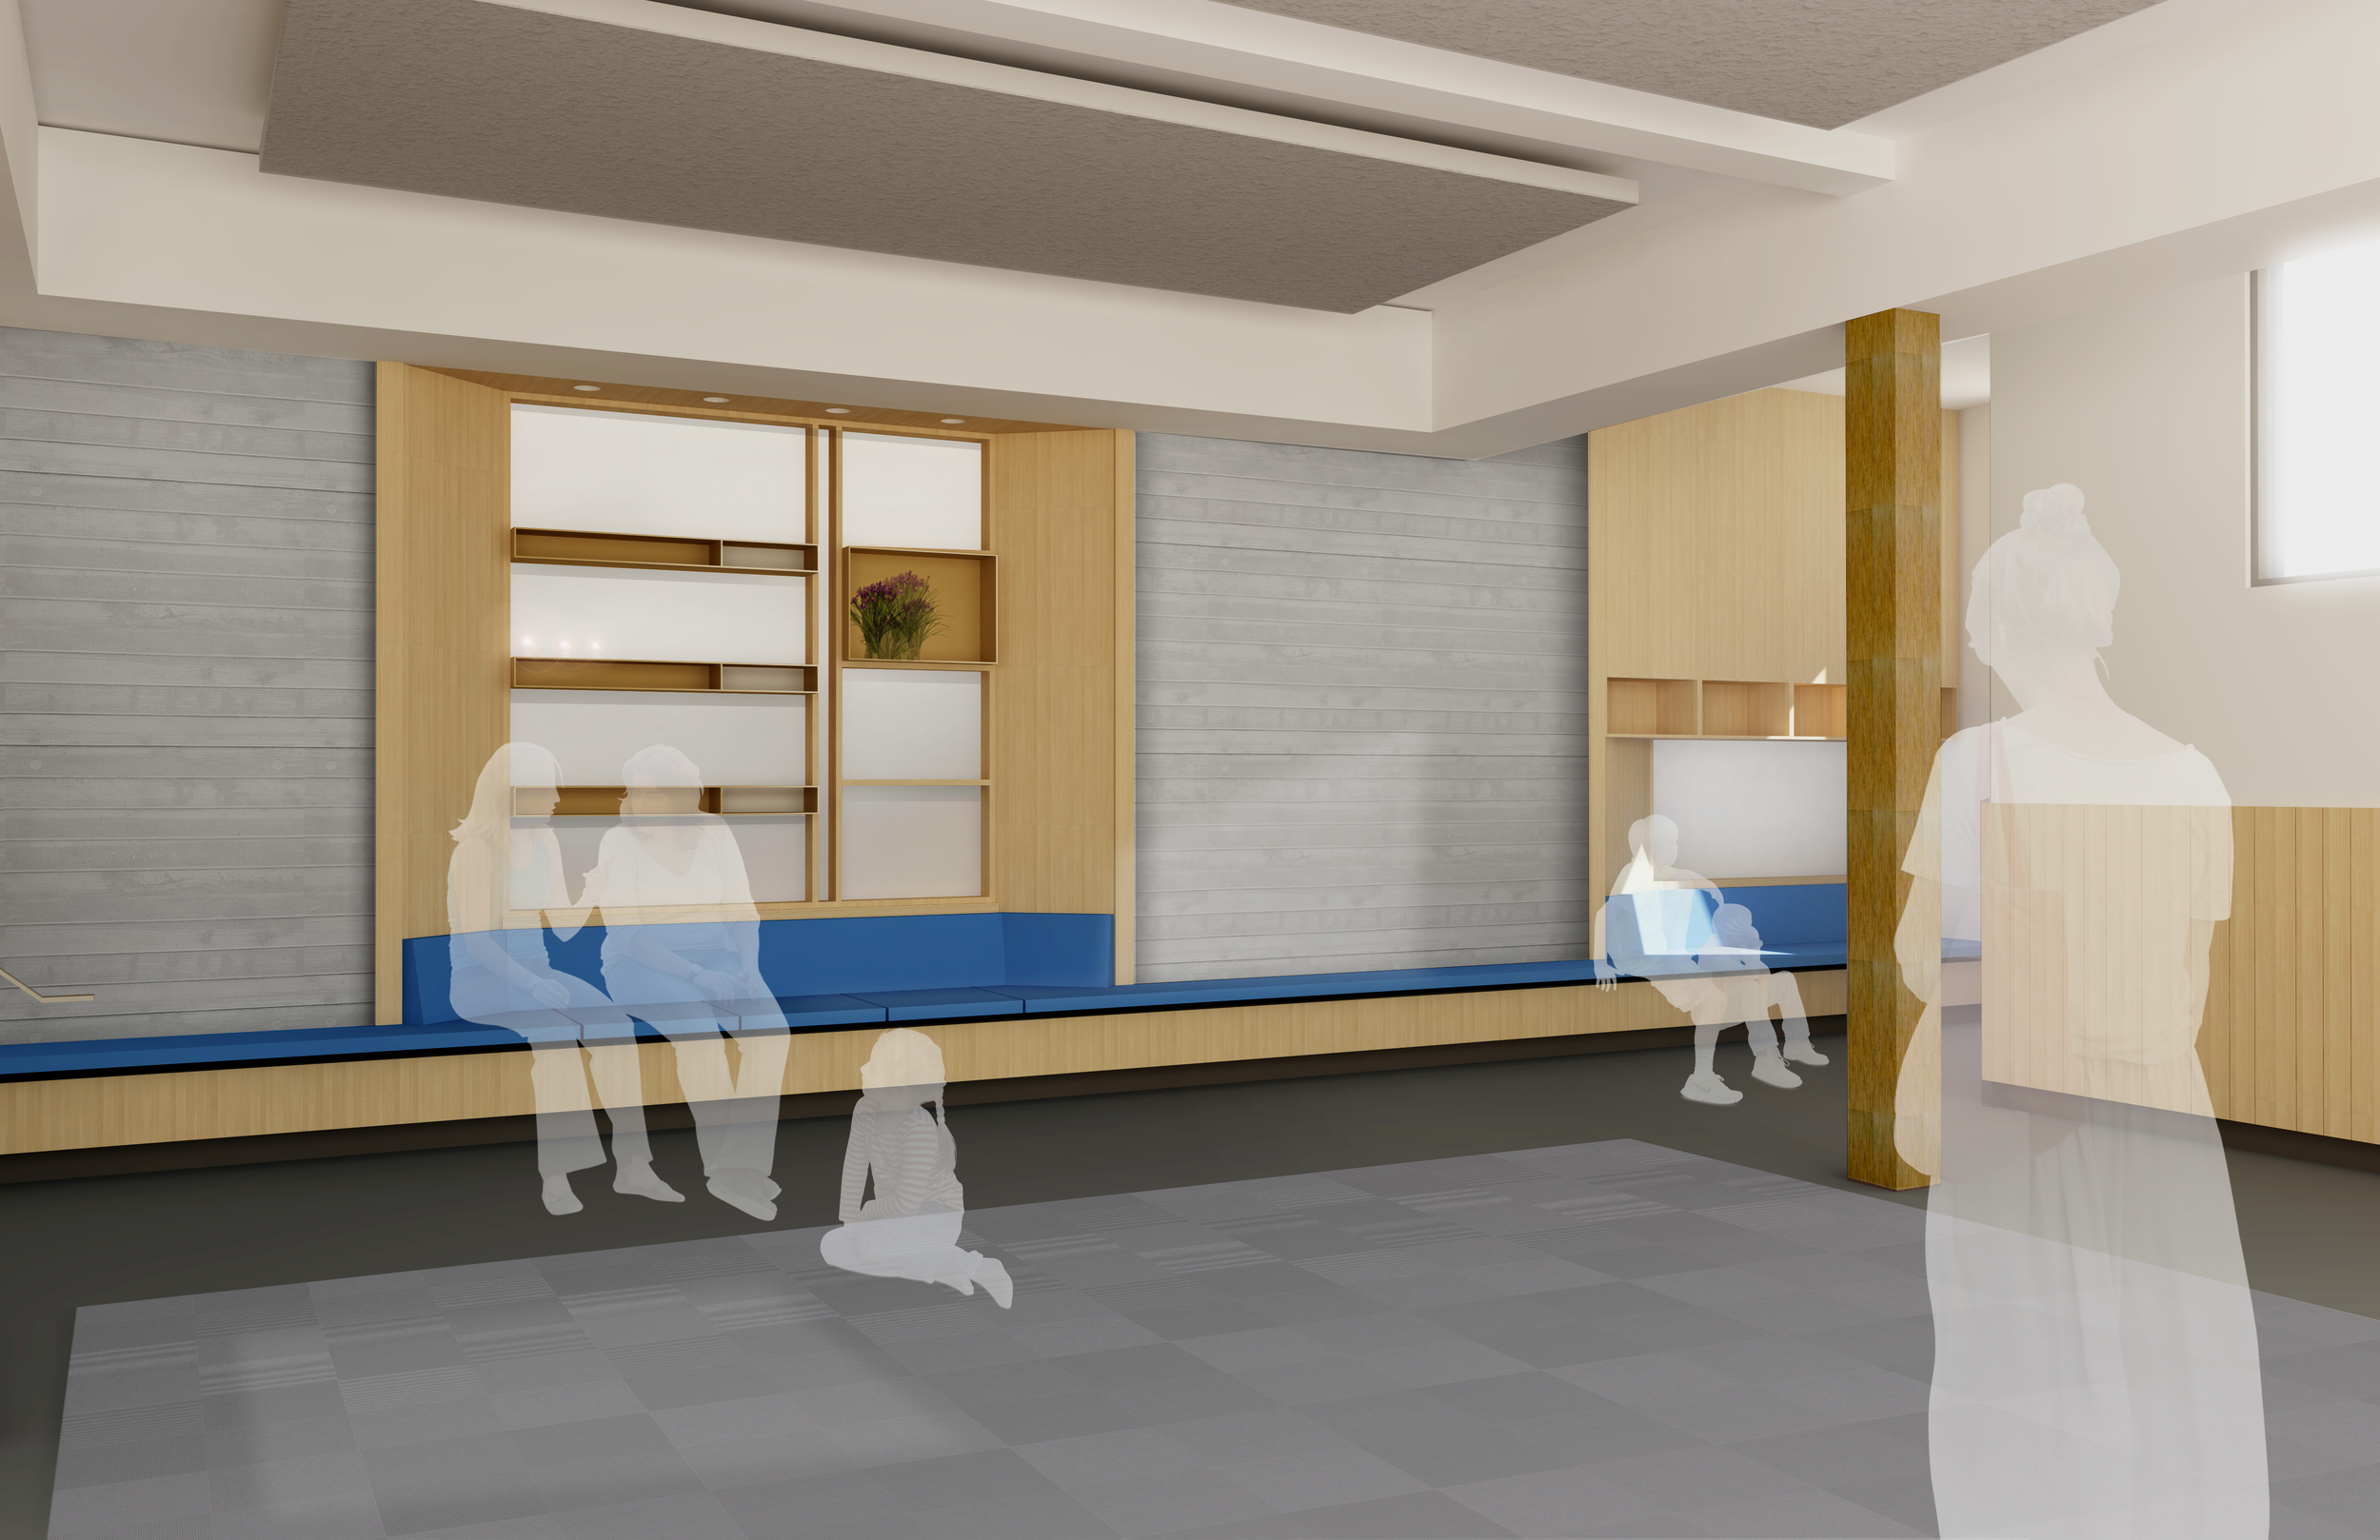 A RECENT ConCEPTUALIZATION OF THE NORTH SIDE OF THE BASEMENT